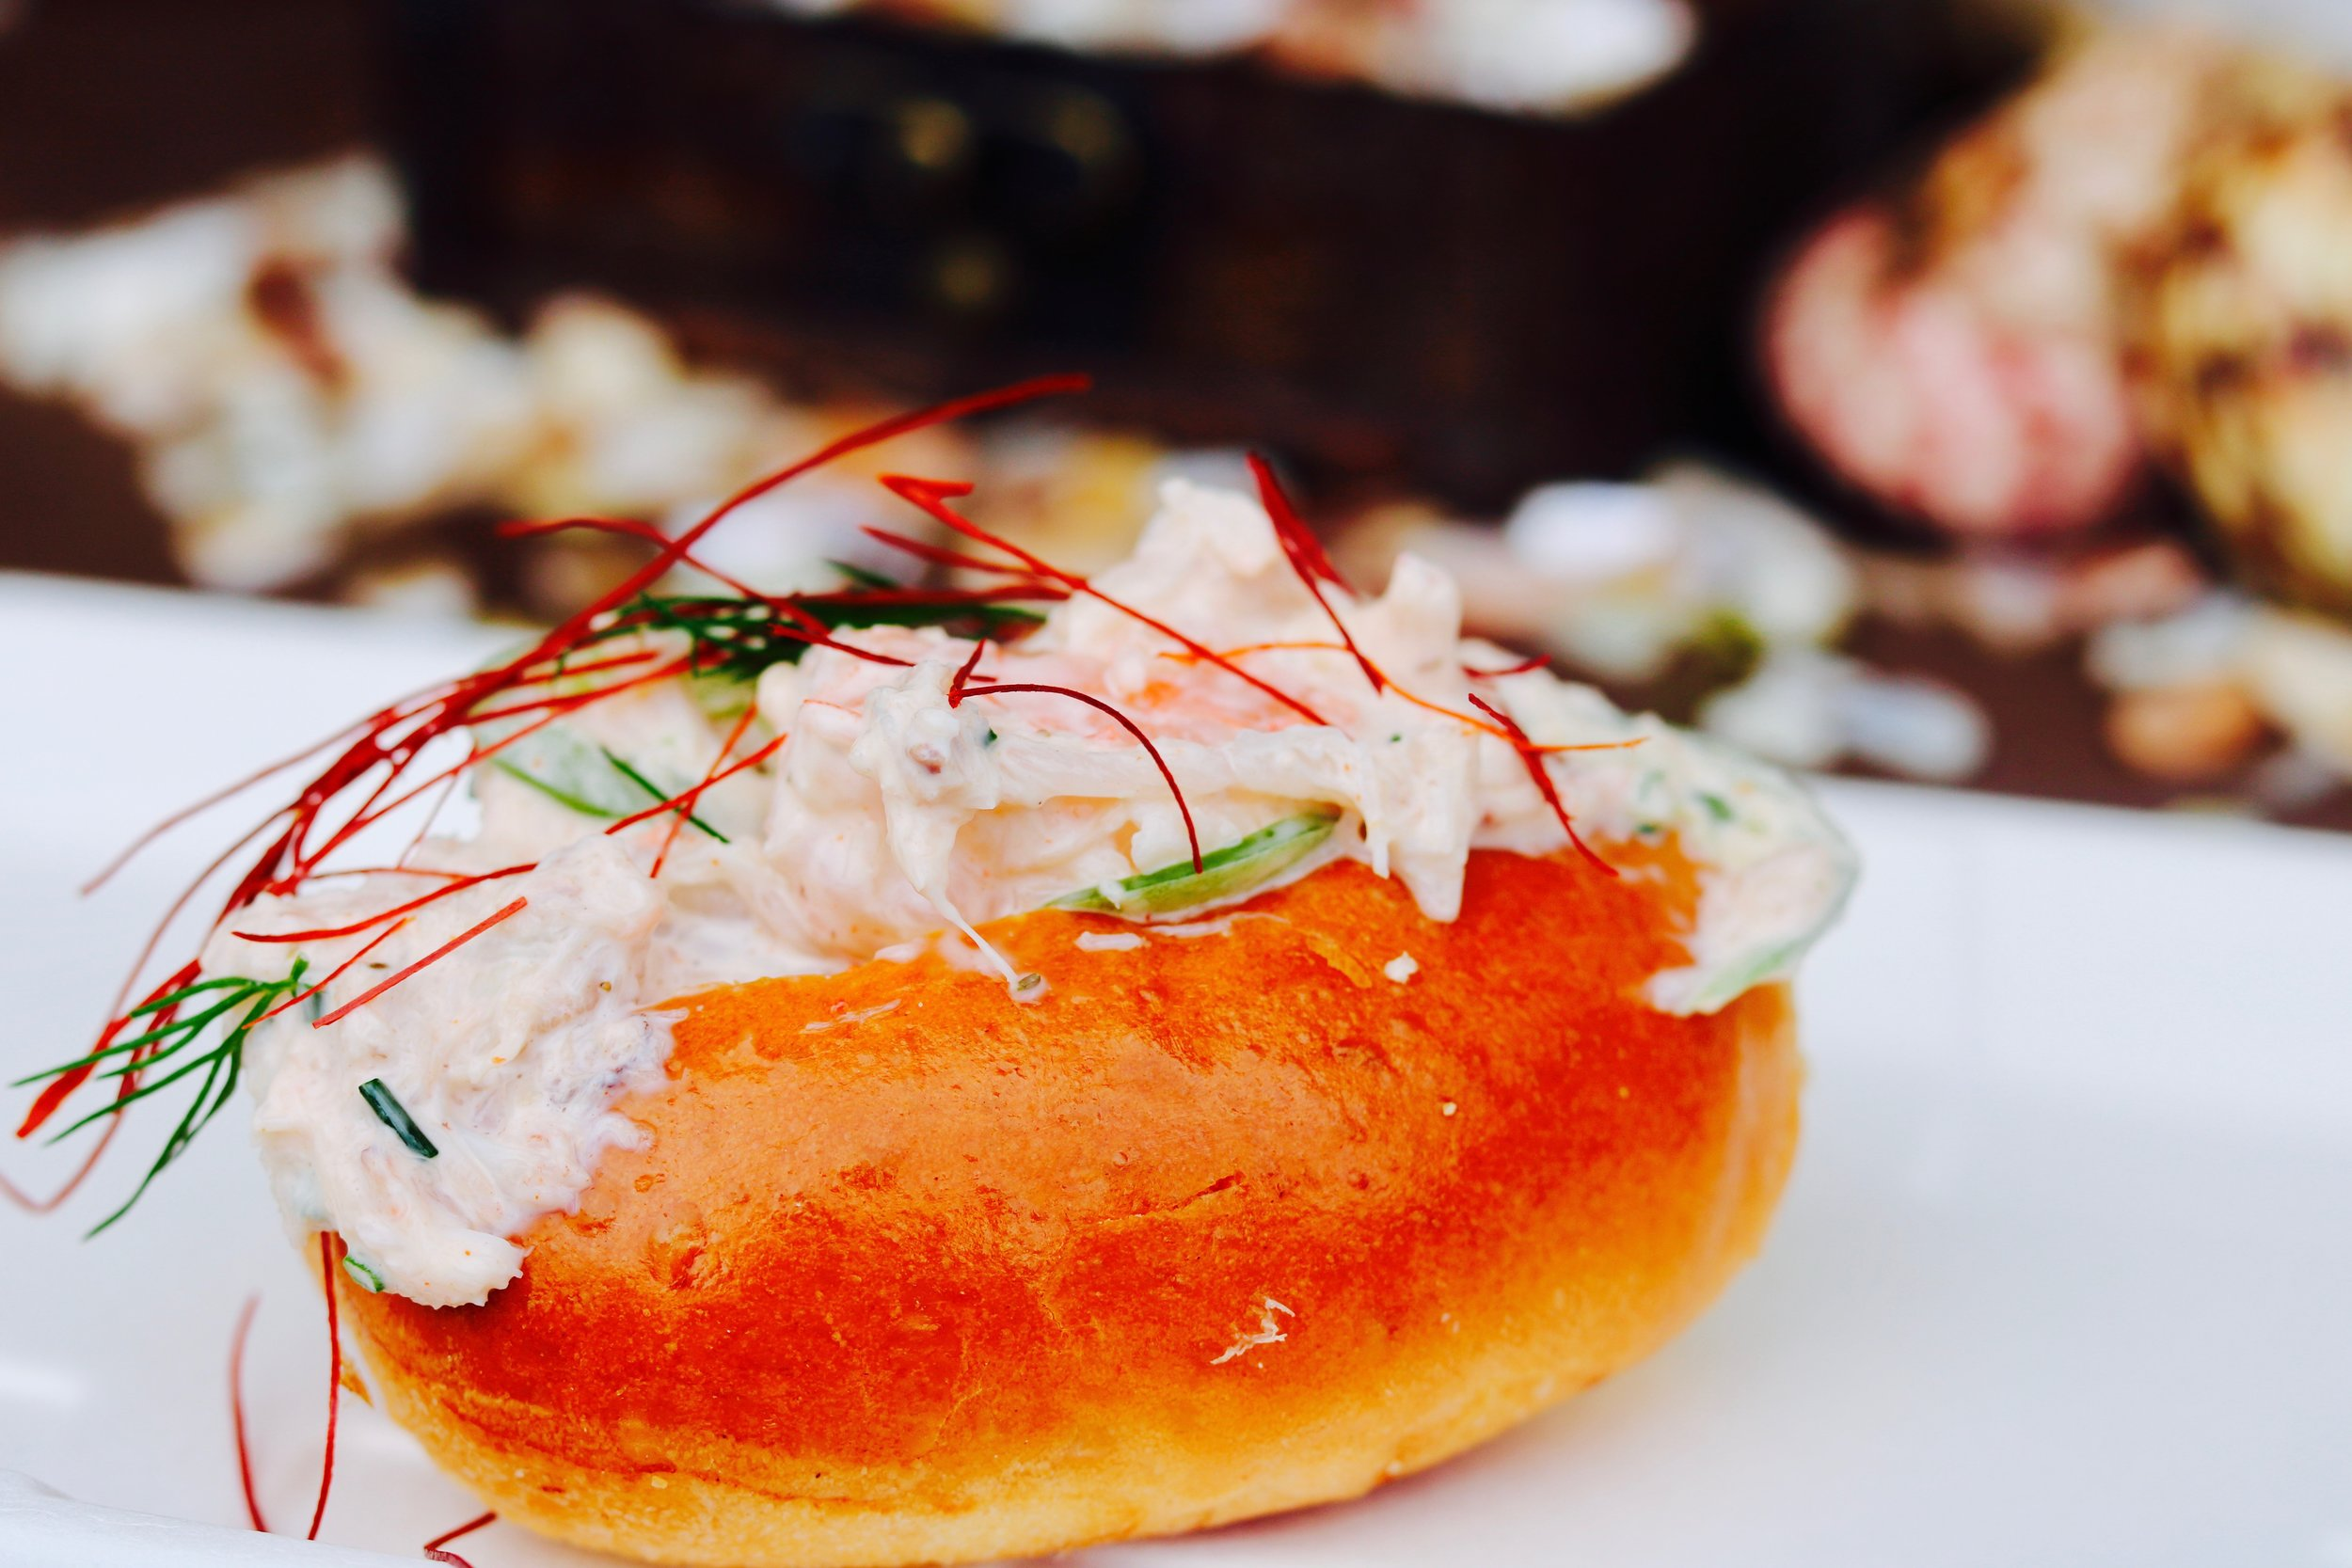 Crab & Shrimp roll with remoulade sauce, Serrano chili, chili threads and dill